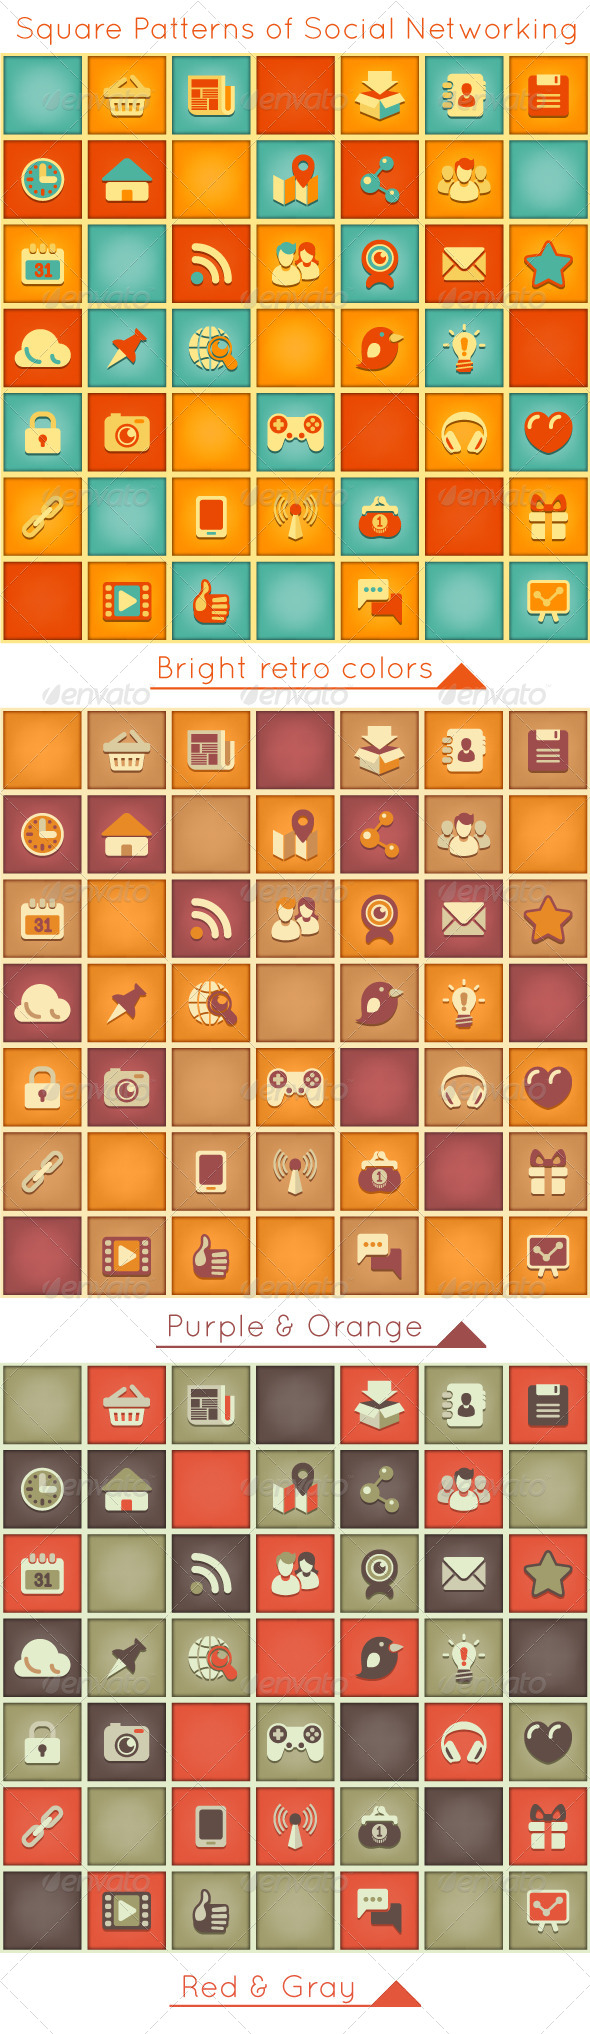 GraphicRiver Square Pattern of Social Networking in Retro Color 5470777